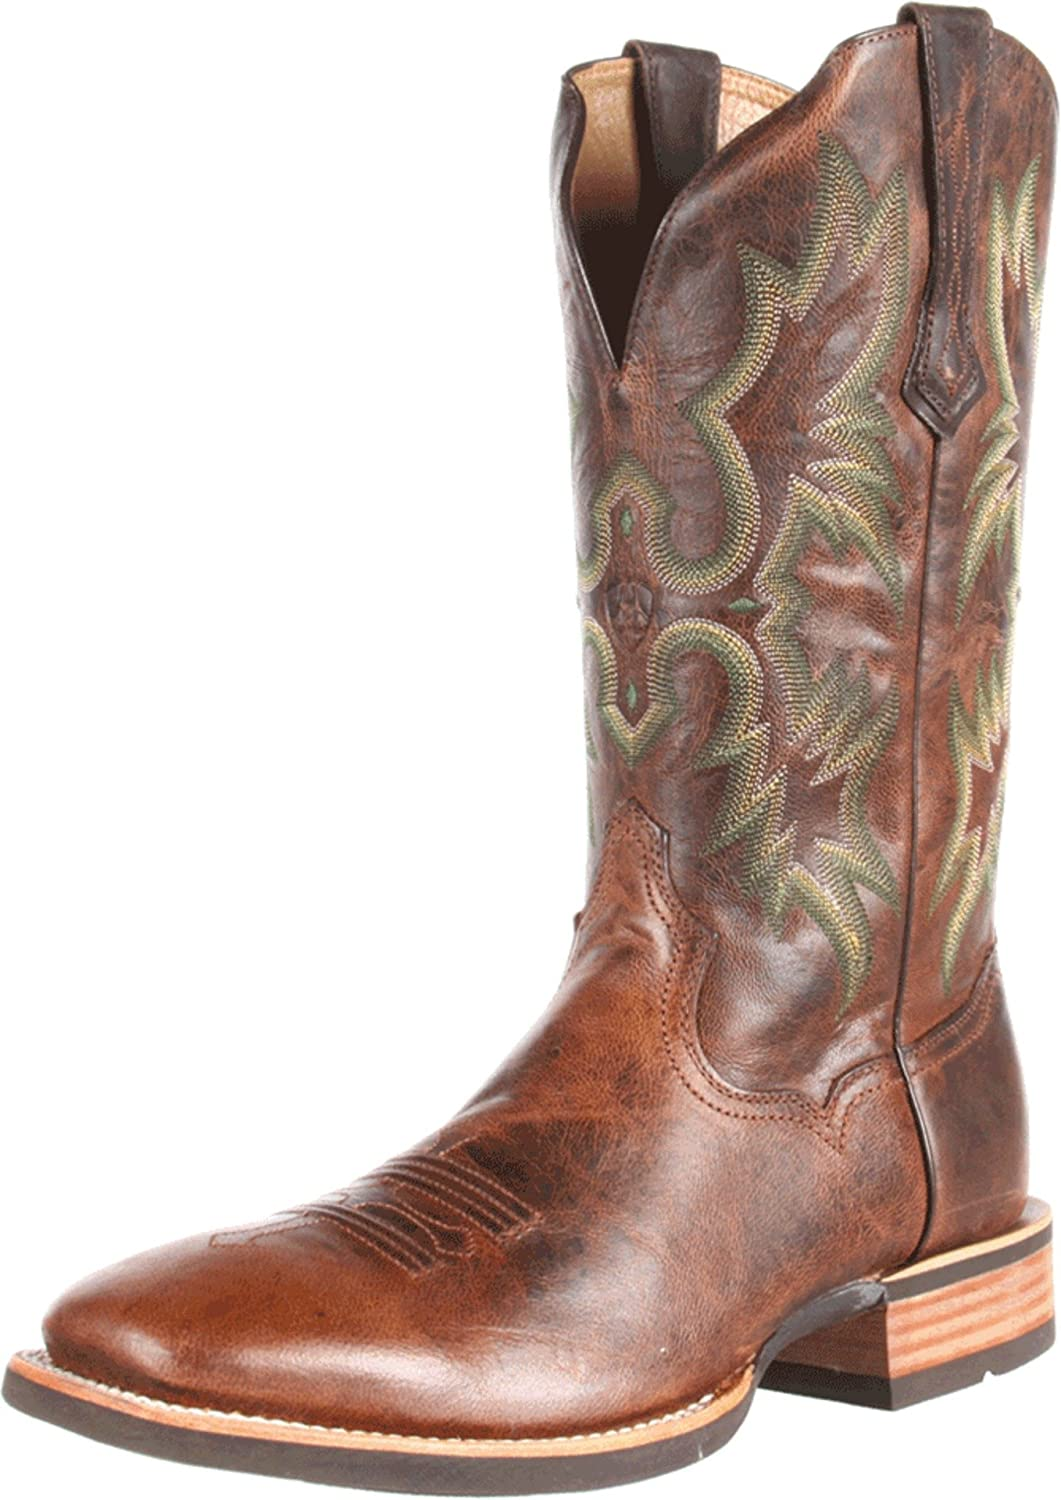 most bootdaddy brown womens cowboy tan corral toe boots pfis jute inlay square cowgirl comfortable with collection comforter